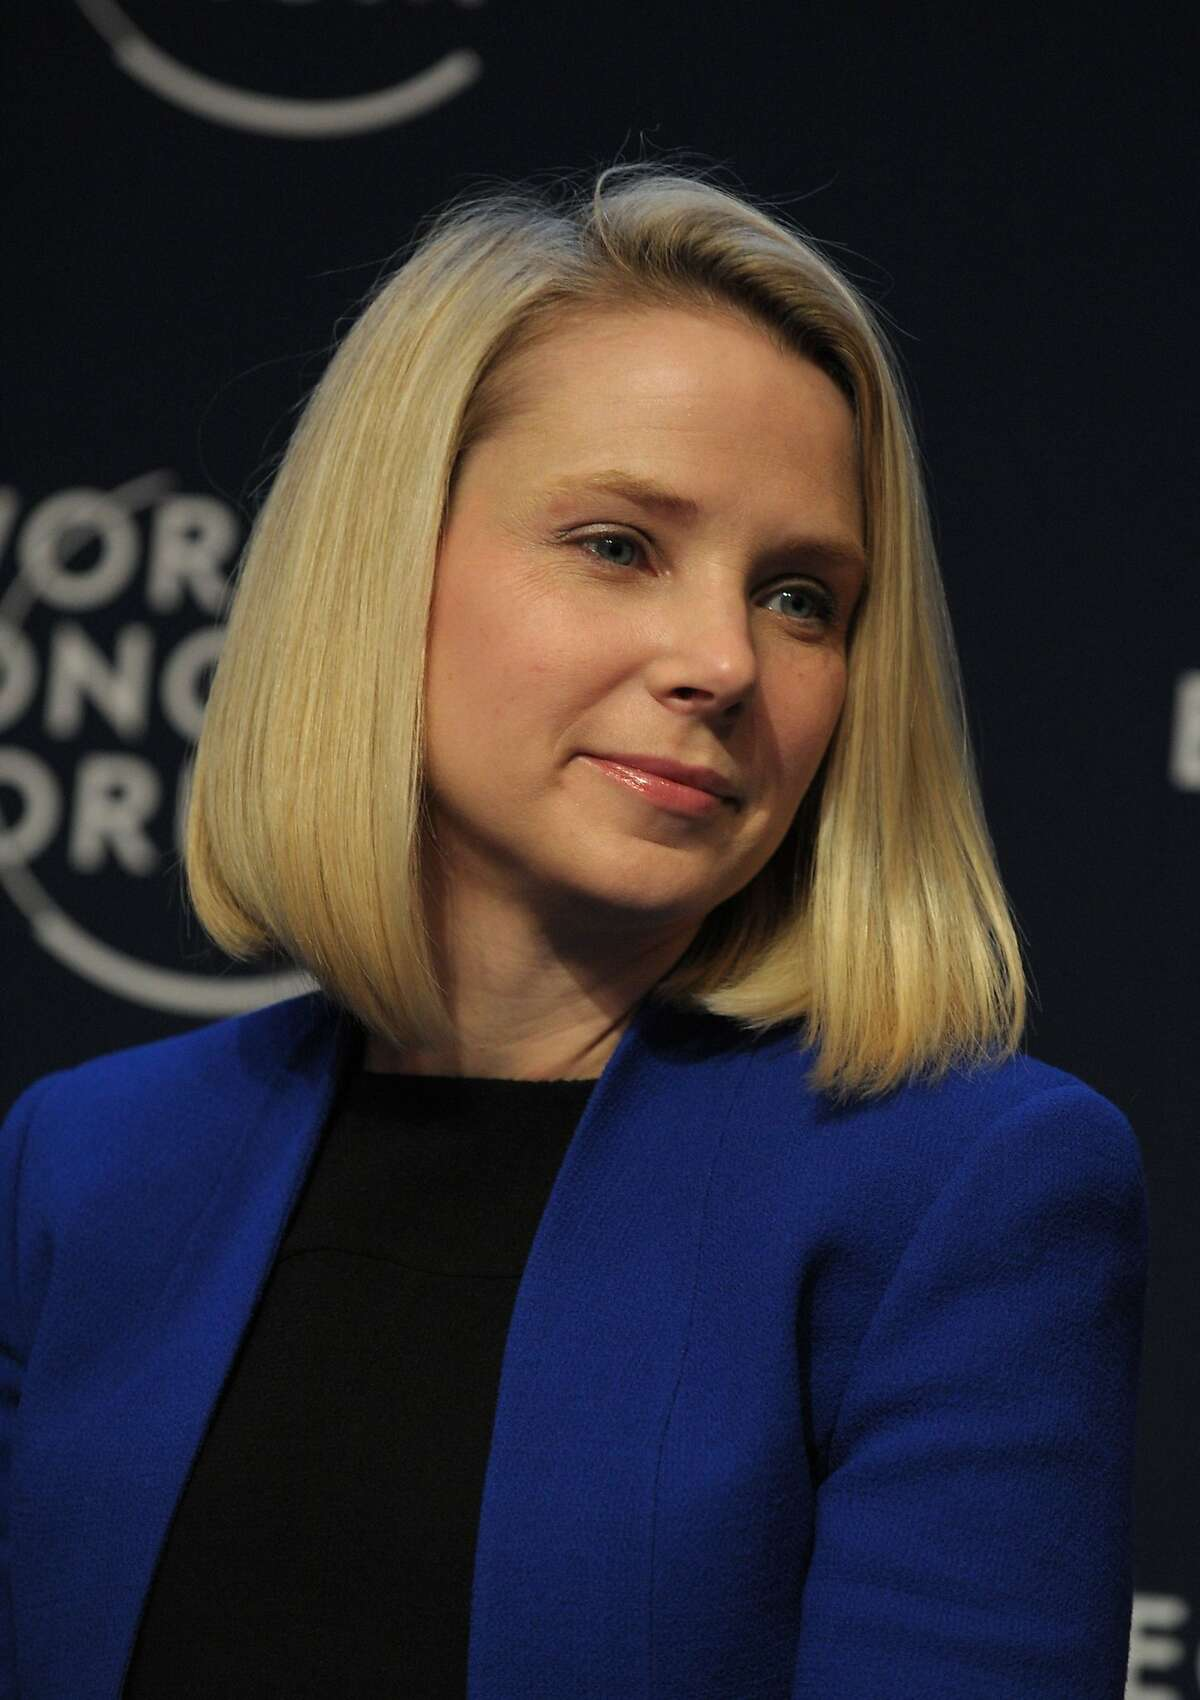 """(FILES) This file photo taken on January 22, 2014 shows Yahoo CEO Marissa Mayer taking part in the session """"the new digital context"""" on the opening day of the World Economic Forum in Davos, Switzerland. Yahoo confirmed on January 9, 2017 that chief executive Marissa Mayer will quit the company's board after its merger with Verizon. Mayer is expected to remain with Yahoo's core business, which is being bought by the US telecom titan. Yahoo is selling its main operating business as a way to separate that from its more valuable stake in Chinese internet giant Alibaba. / AFP PHOTO / ERIC PIERMONTERIC PIERMONT/AFP/Getty Images"""